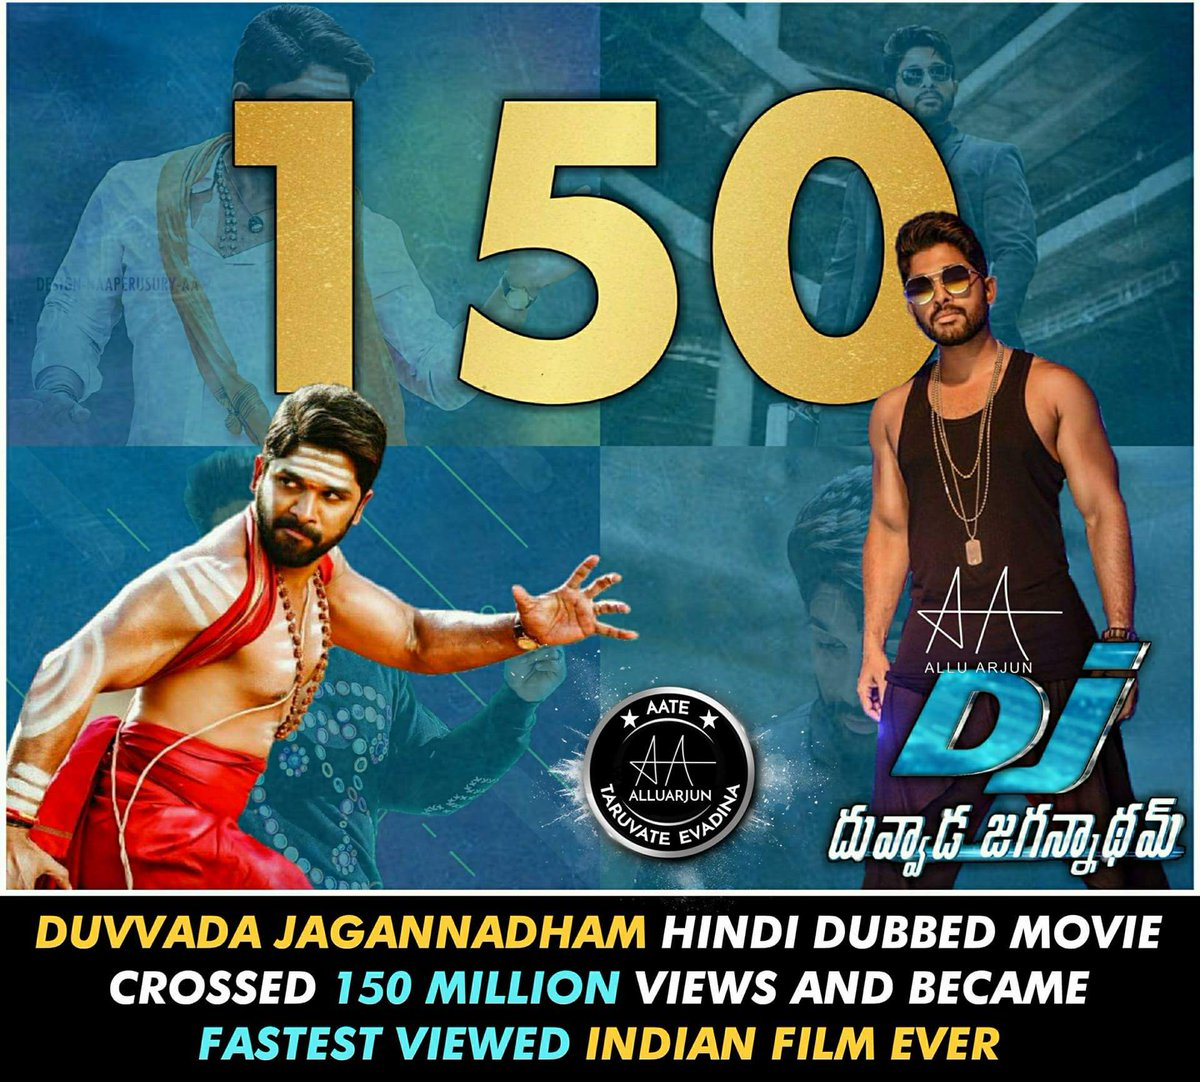 Another day and another record for #StylishStar #AlluArjun   It&#39;s 150Million Views For  #DJHindiDubbed With 565K Likes Fastest For Any South Indian Movie  He has broken his own record of #Saarinodu     #DJ #DuvvadaJagannadham  Watch it here :   https:// youtu.be/zMxIW7uwDGg  &nbsp;  <br>http://pic.twitter.com/Pw0X6L7UMY